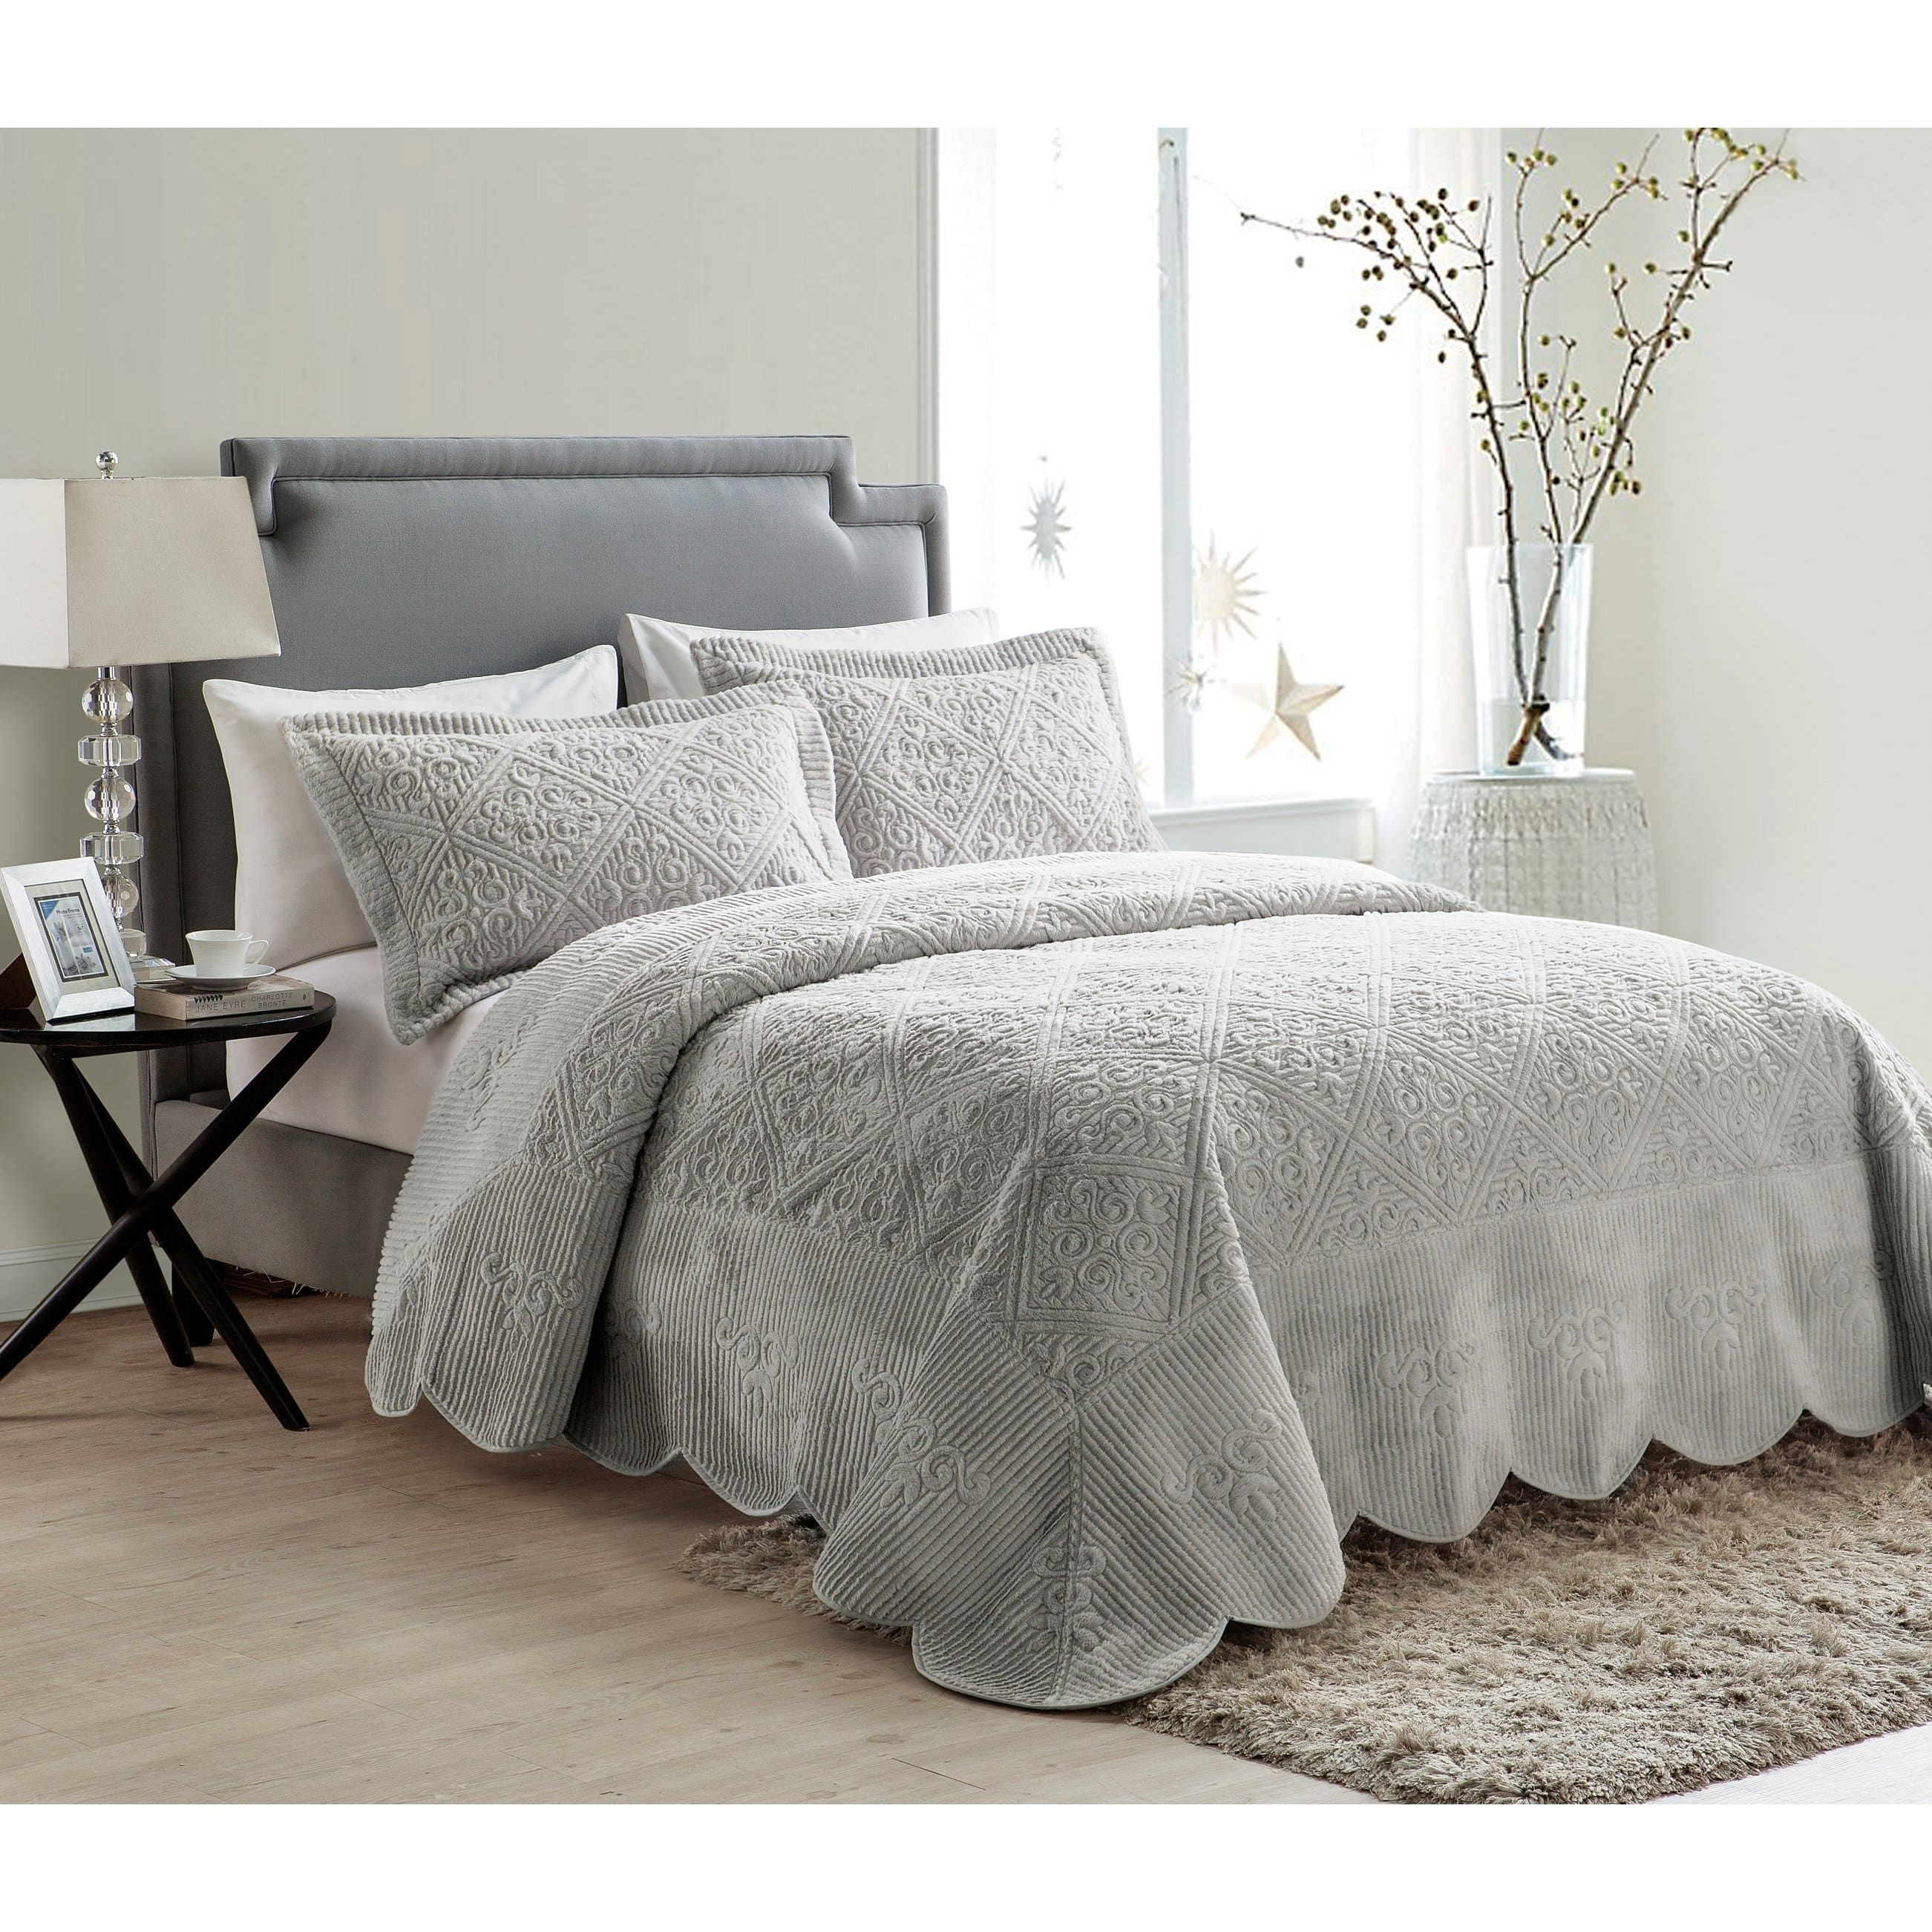 Vcny Westland Plush Quilted Bedspread Set With Images